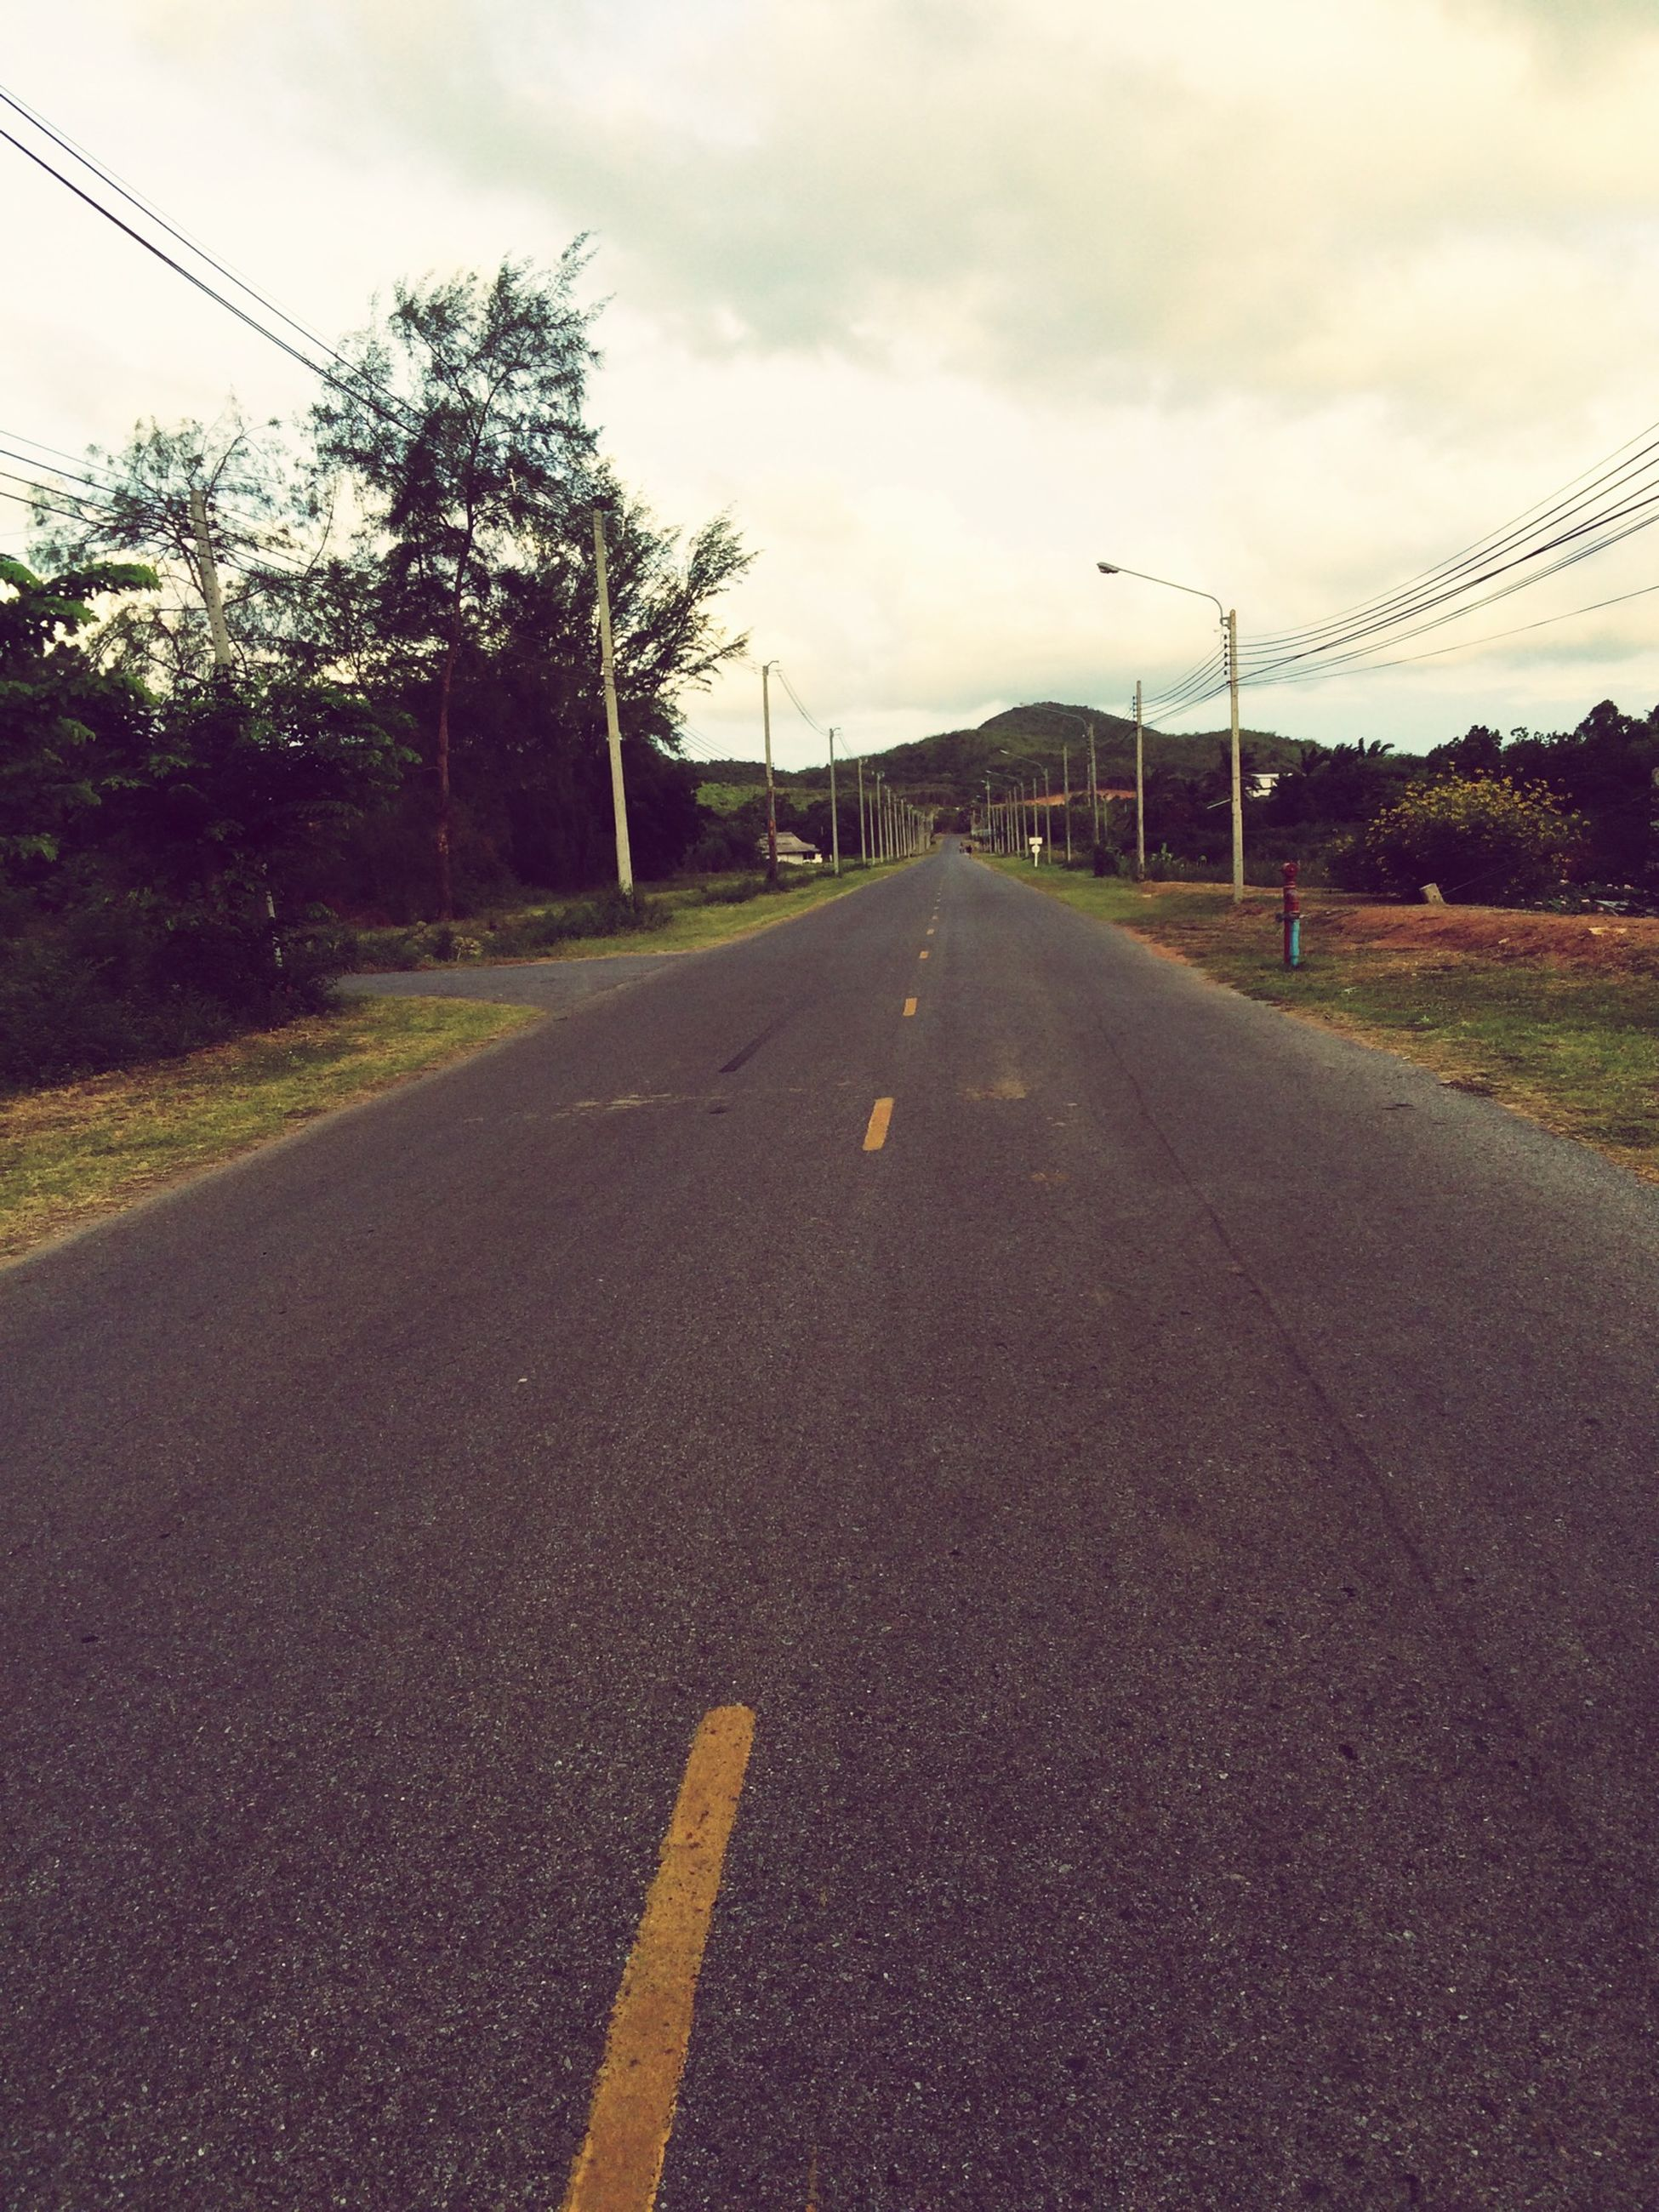 the way forward, transportation, diminishing perspective, road marking, road, sky, vanishing point, asphalt, cloud - sky, empty, country road, empty road, cloudy, surface level, cloud, street light, tree, long, street, outdoors